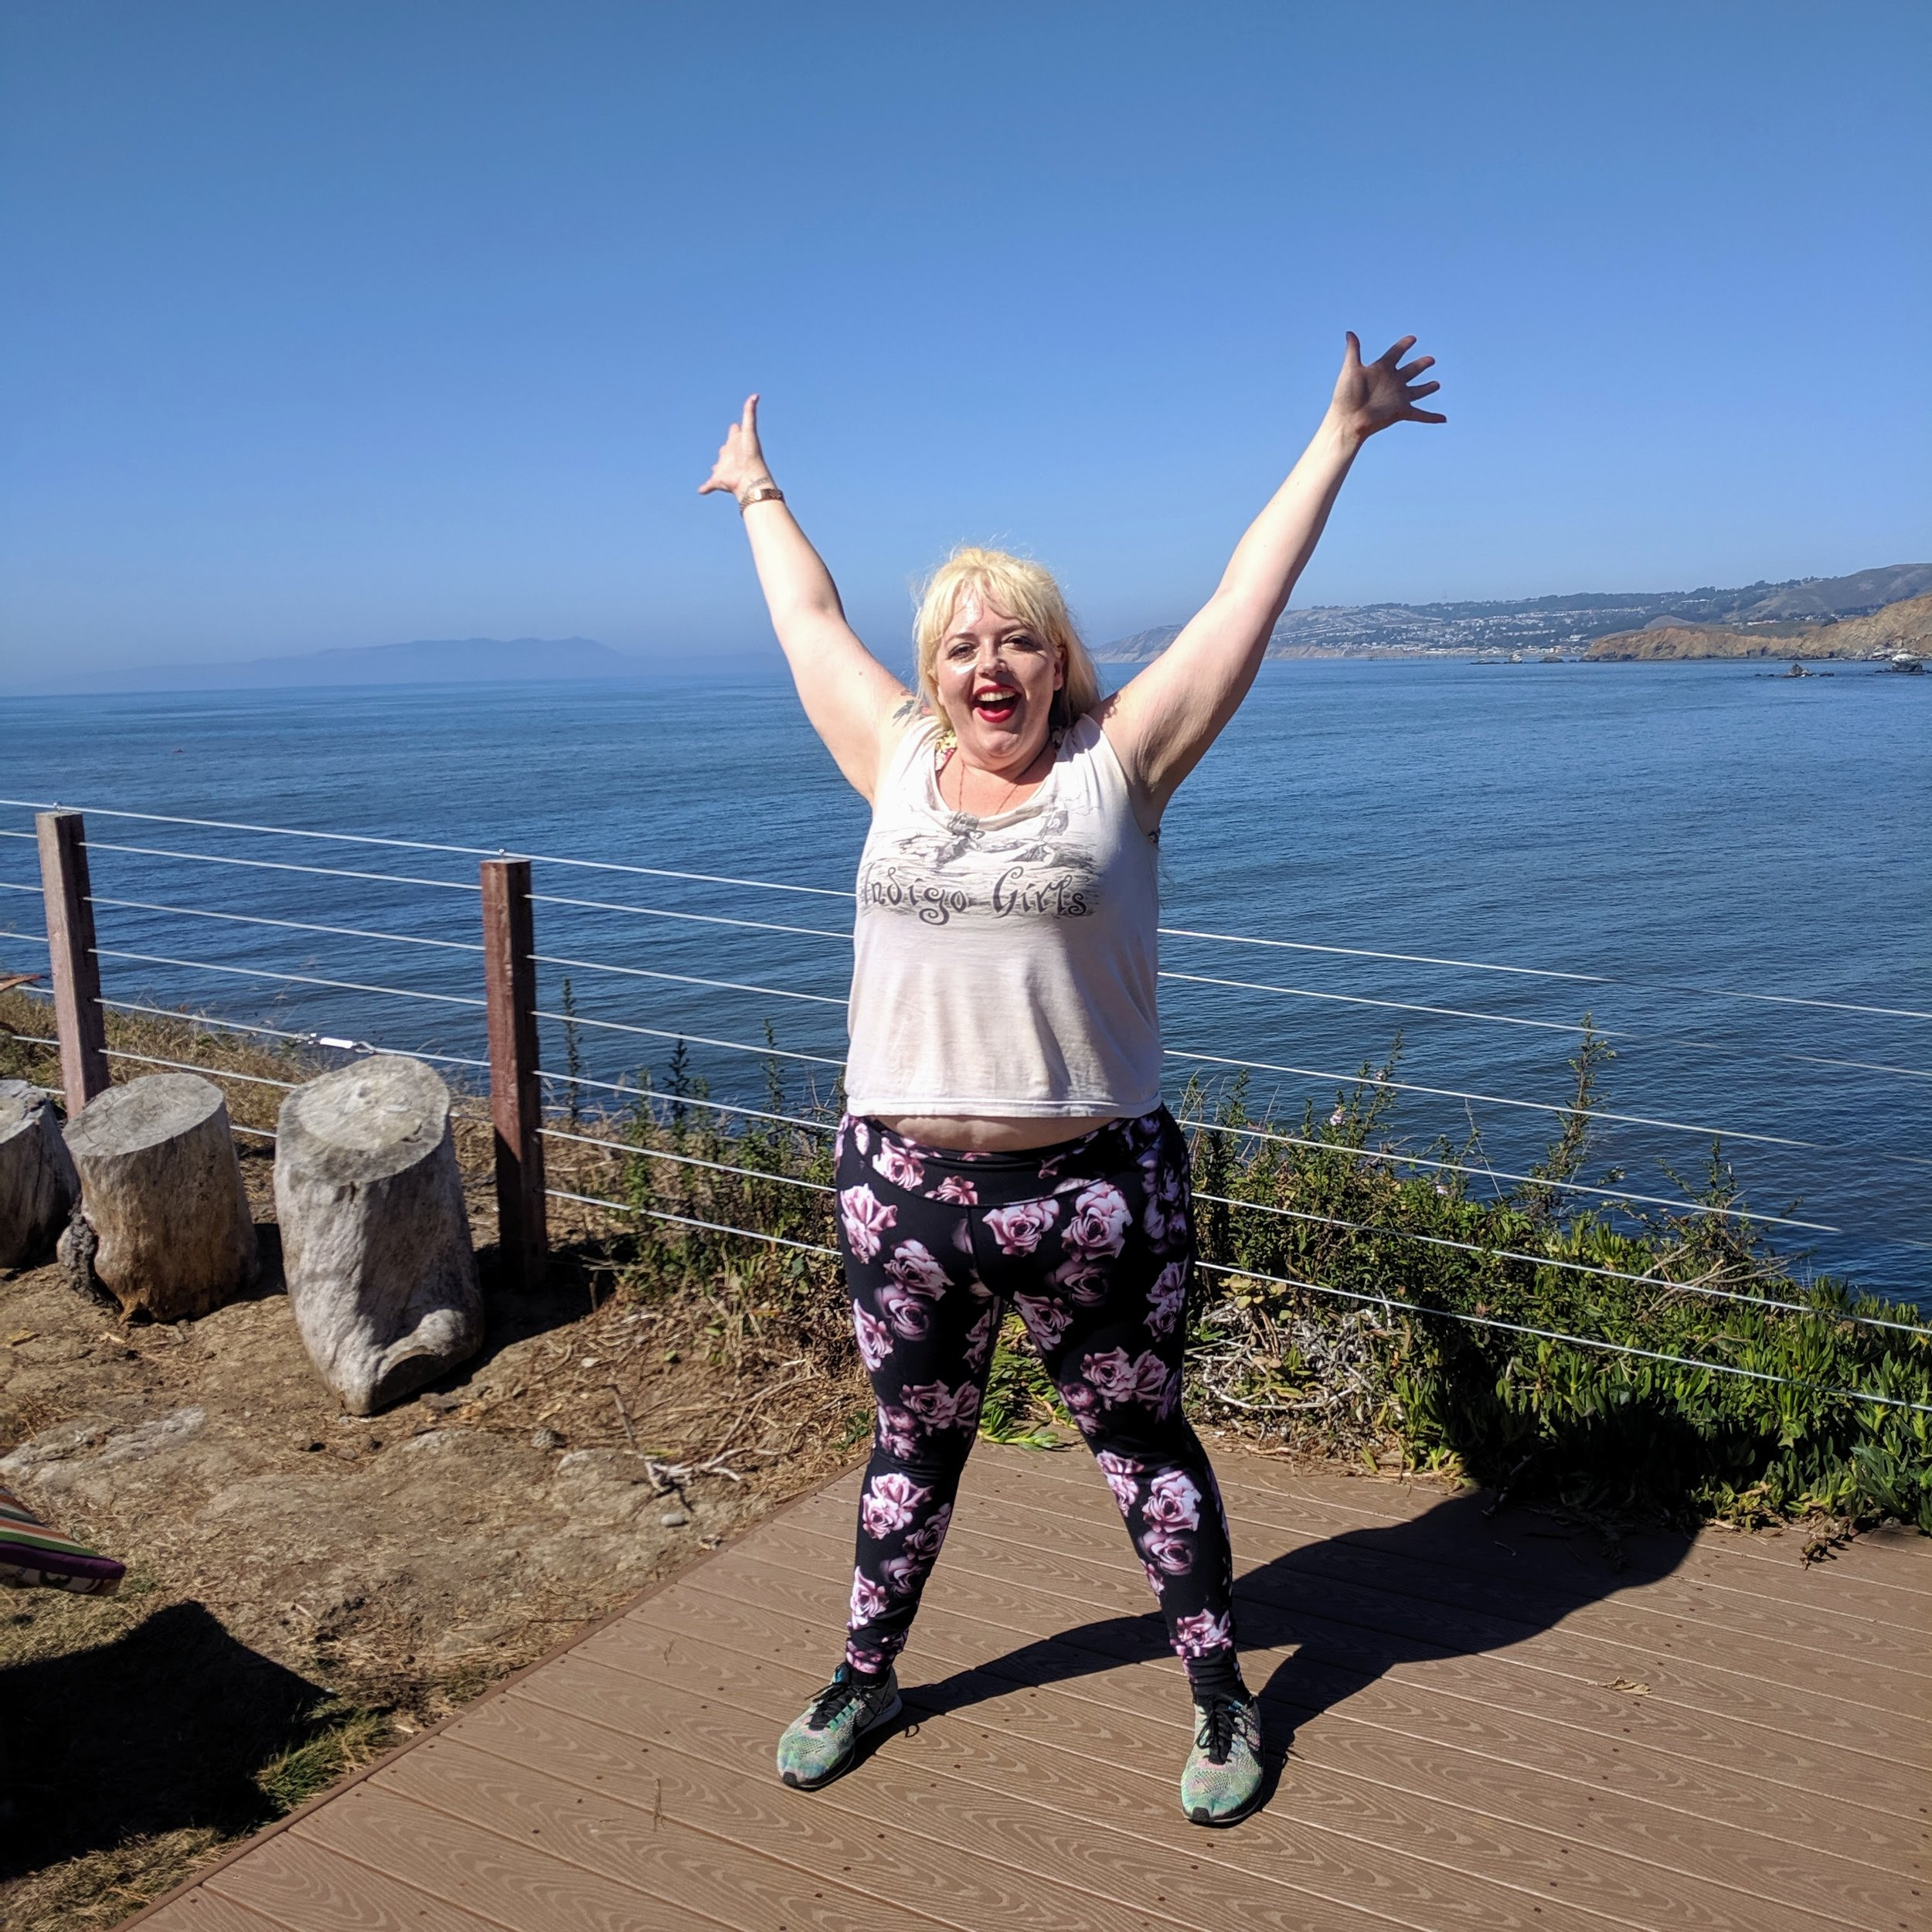 I taught at a private party overlooking the Pacific Ocean this weekend and there were whales breaching! It's the first time any sea mammals have attended Fat Kid Dance Party!